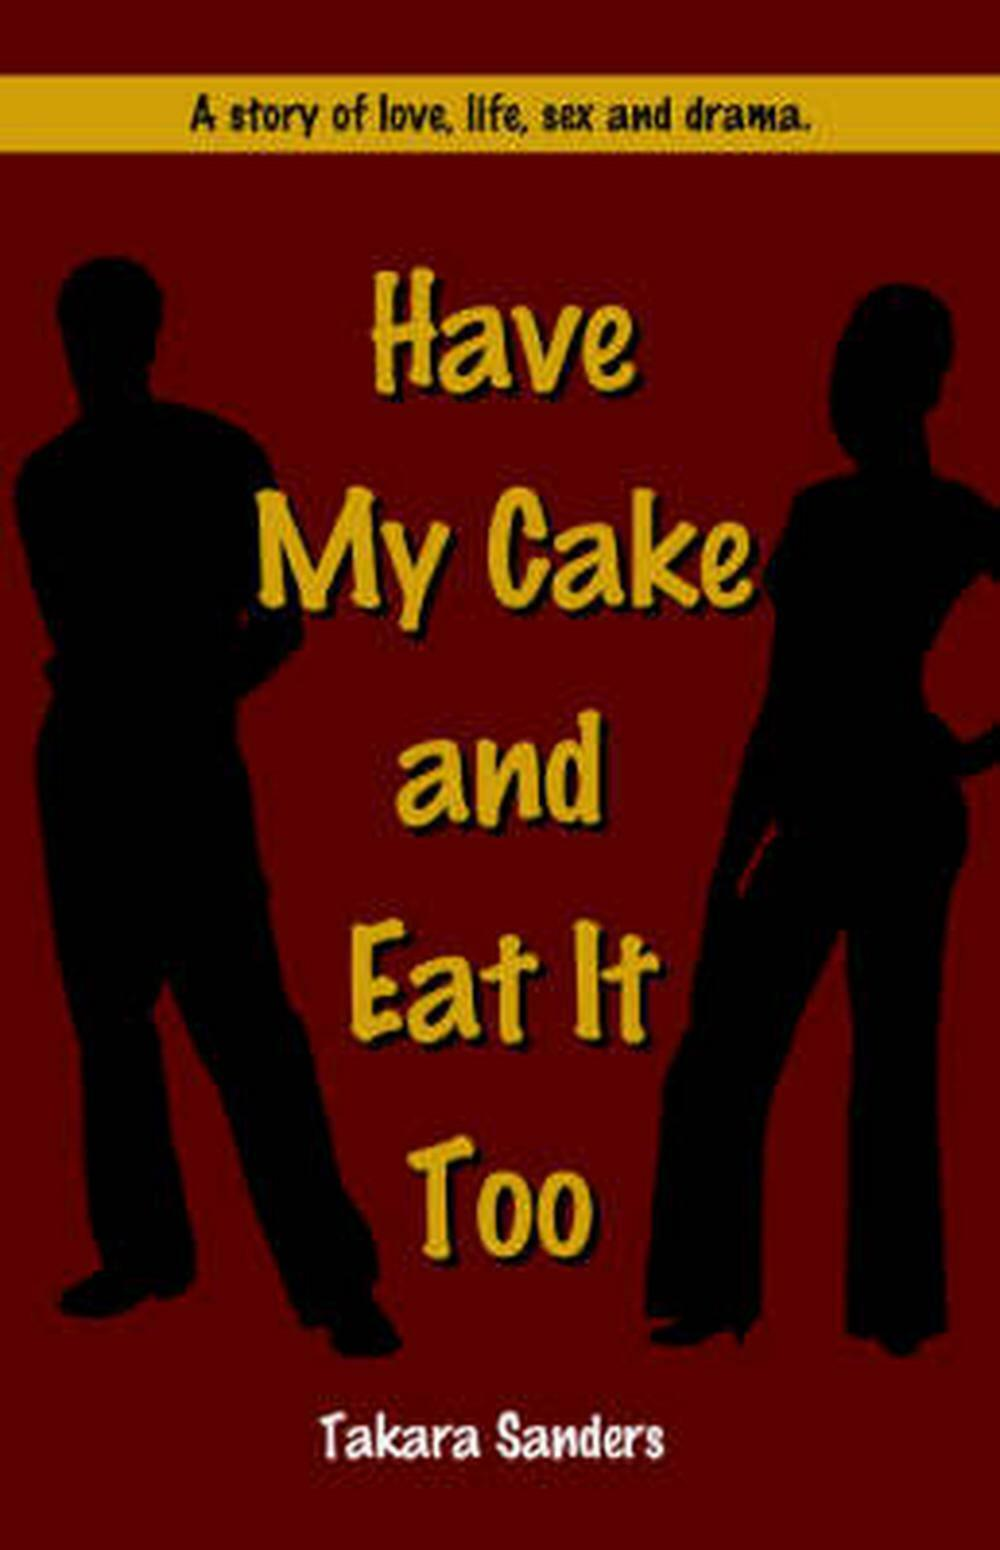 Have My Cake and Eat It Too NEW by Takara Sanders